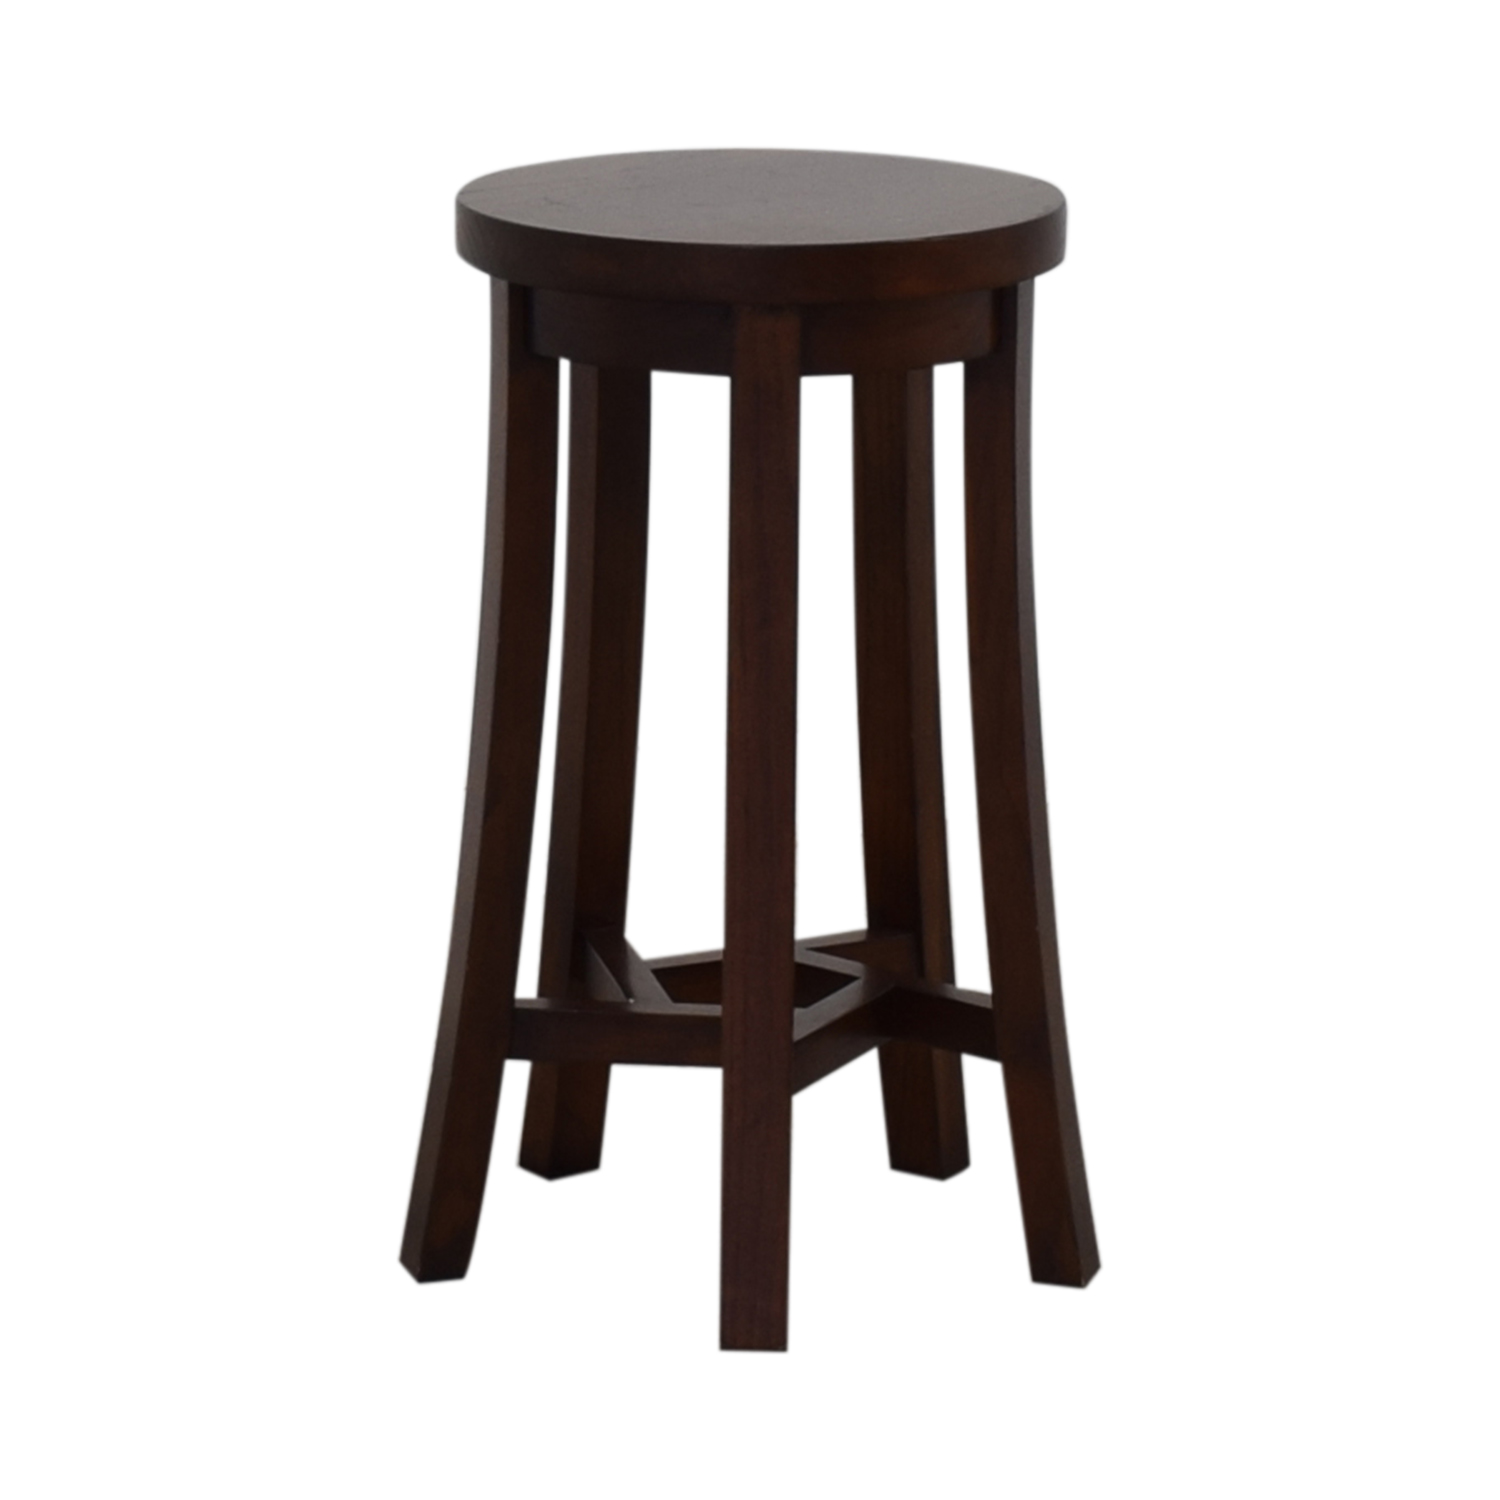 Room & Board Room & Board by Maria Yee Mingshi Round End Table on sale